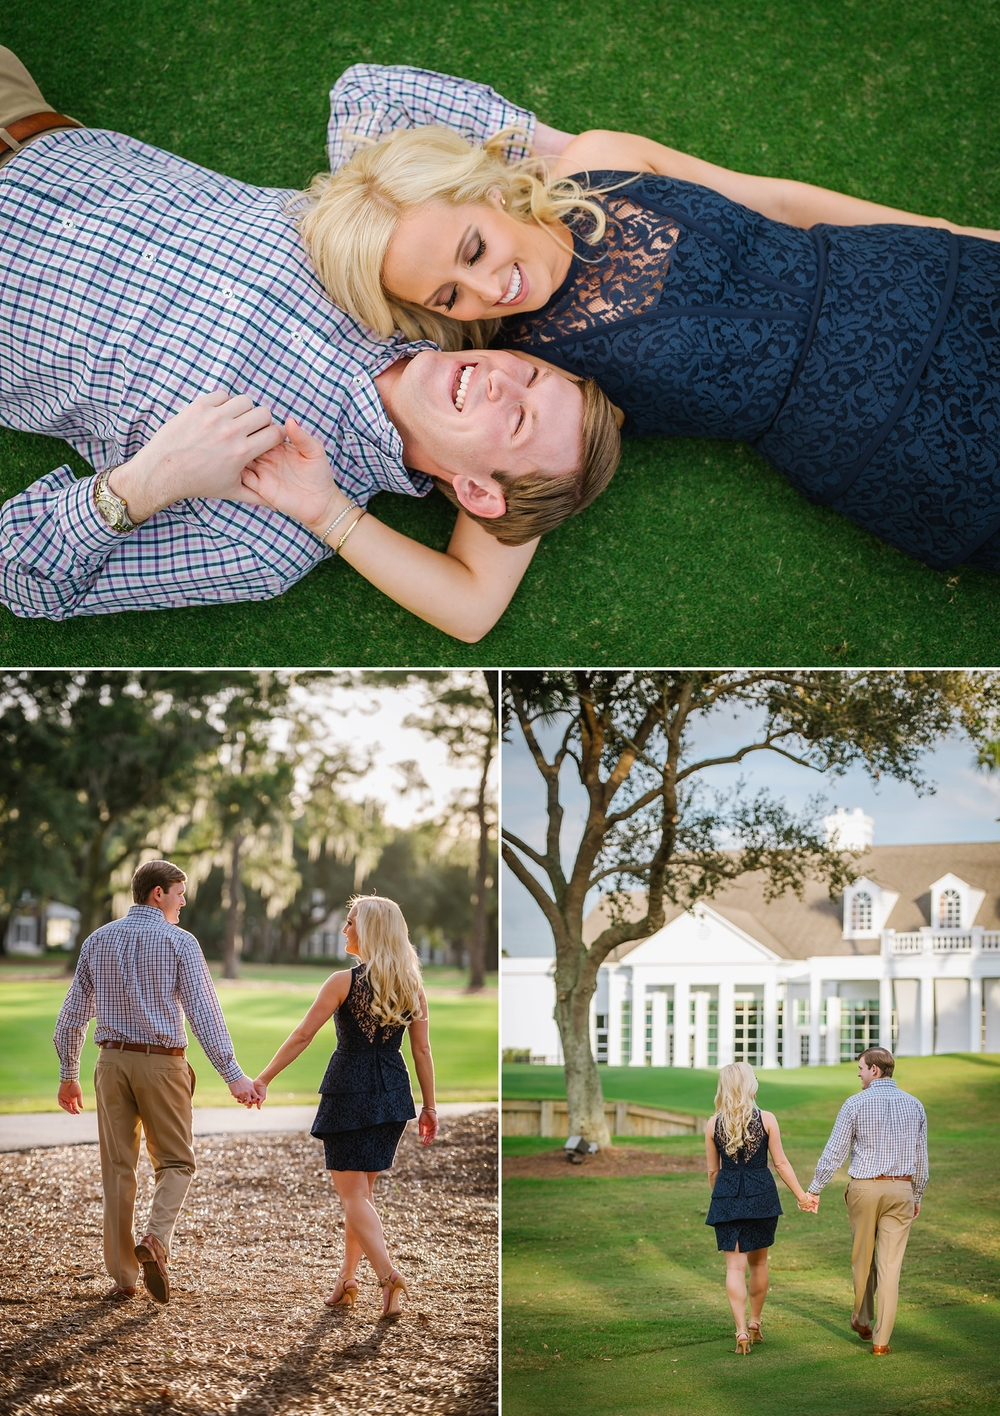 romantic-stylish-elegant-upscale-engagement-photography-ashlee-hamon-tampa_0005.jpg